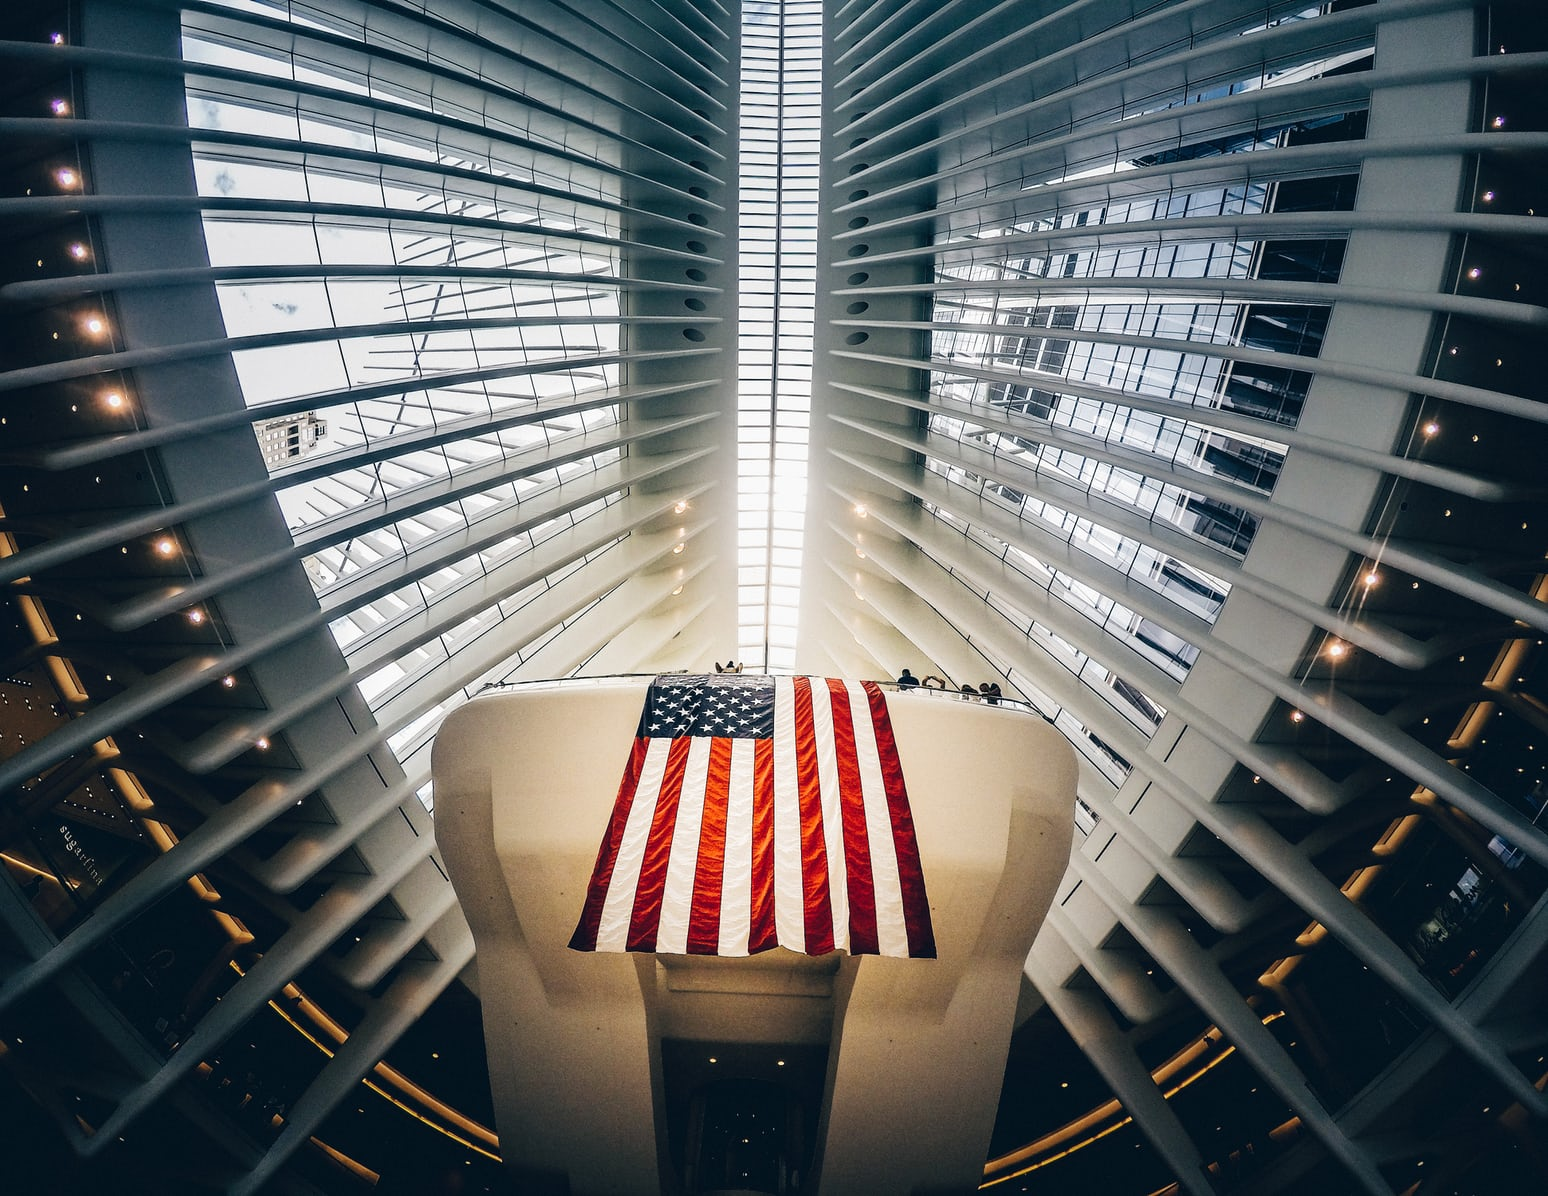 Westfield World Trade Centre | Augusto Navarro on Unsplash